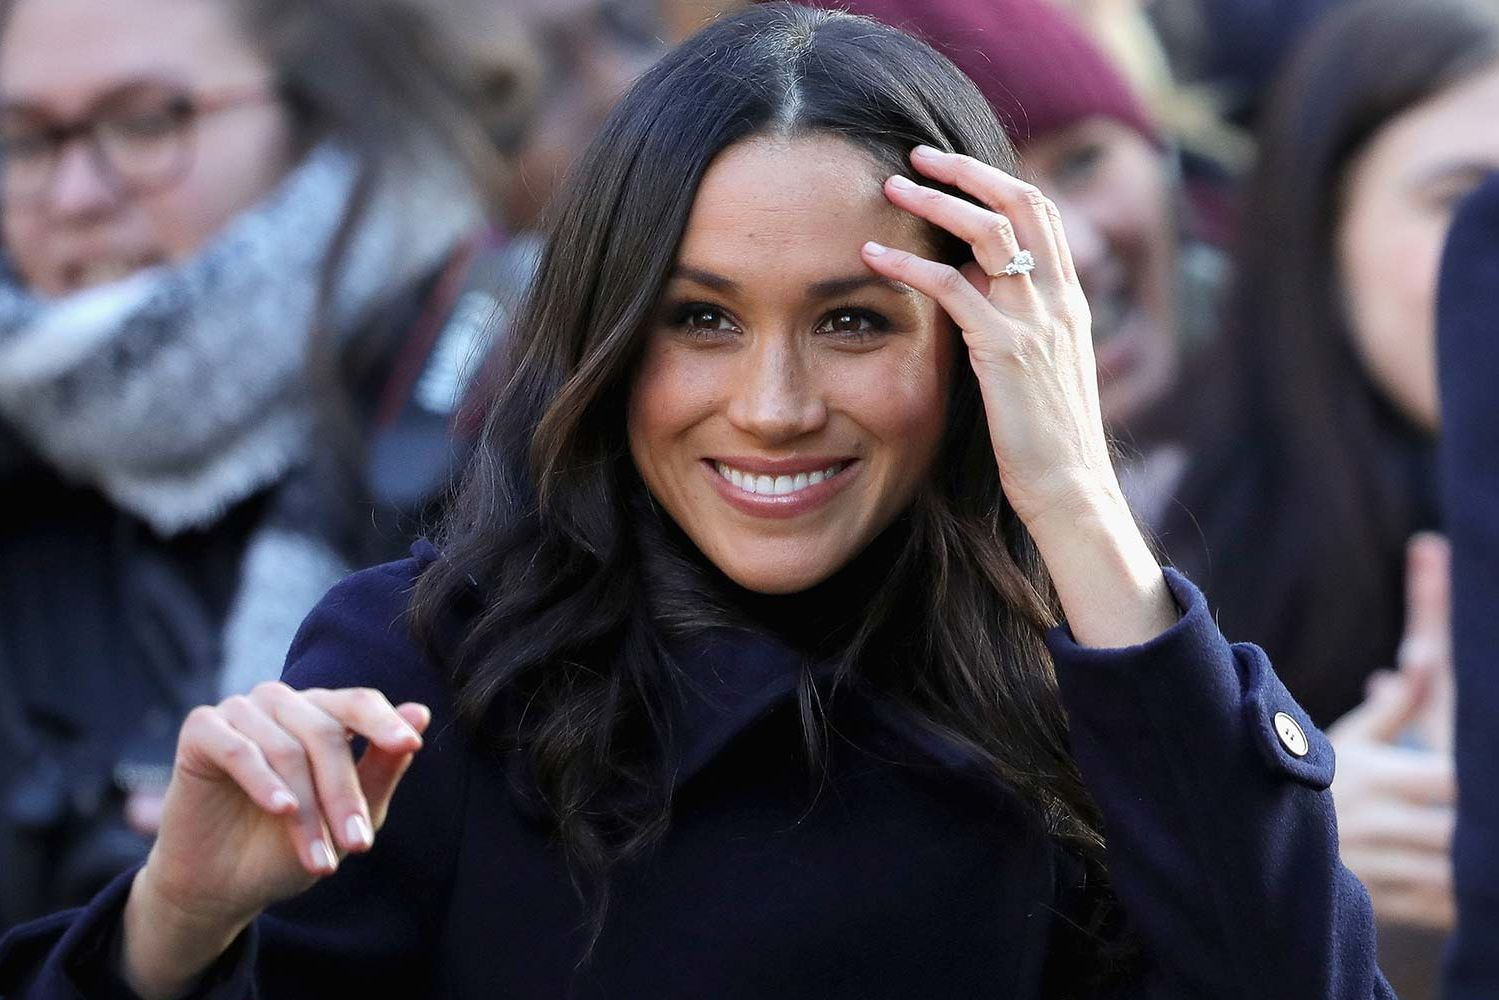 Who Will Be Meghan Markle's Maid of Honor? We Have a Few Ideas